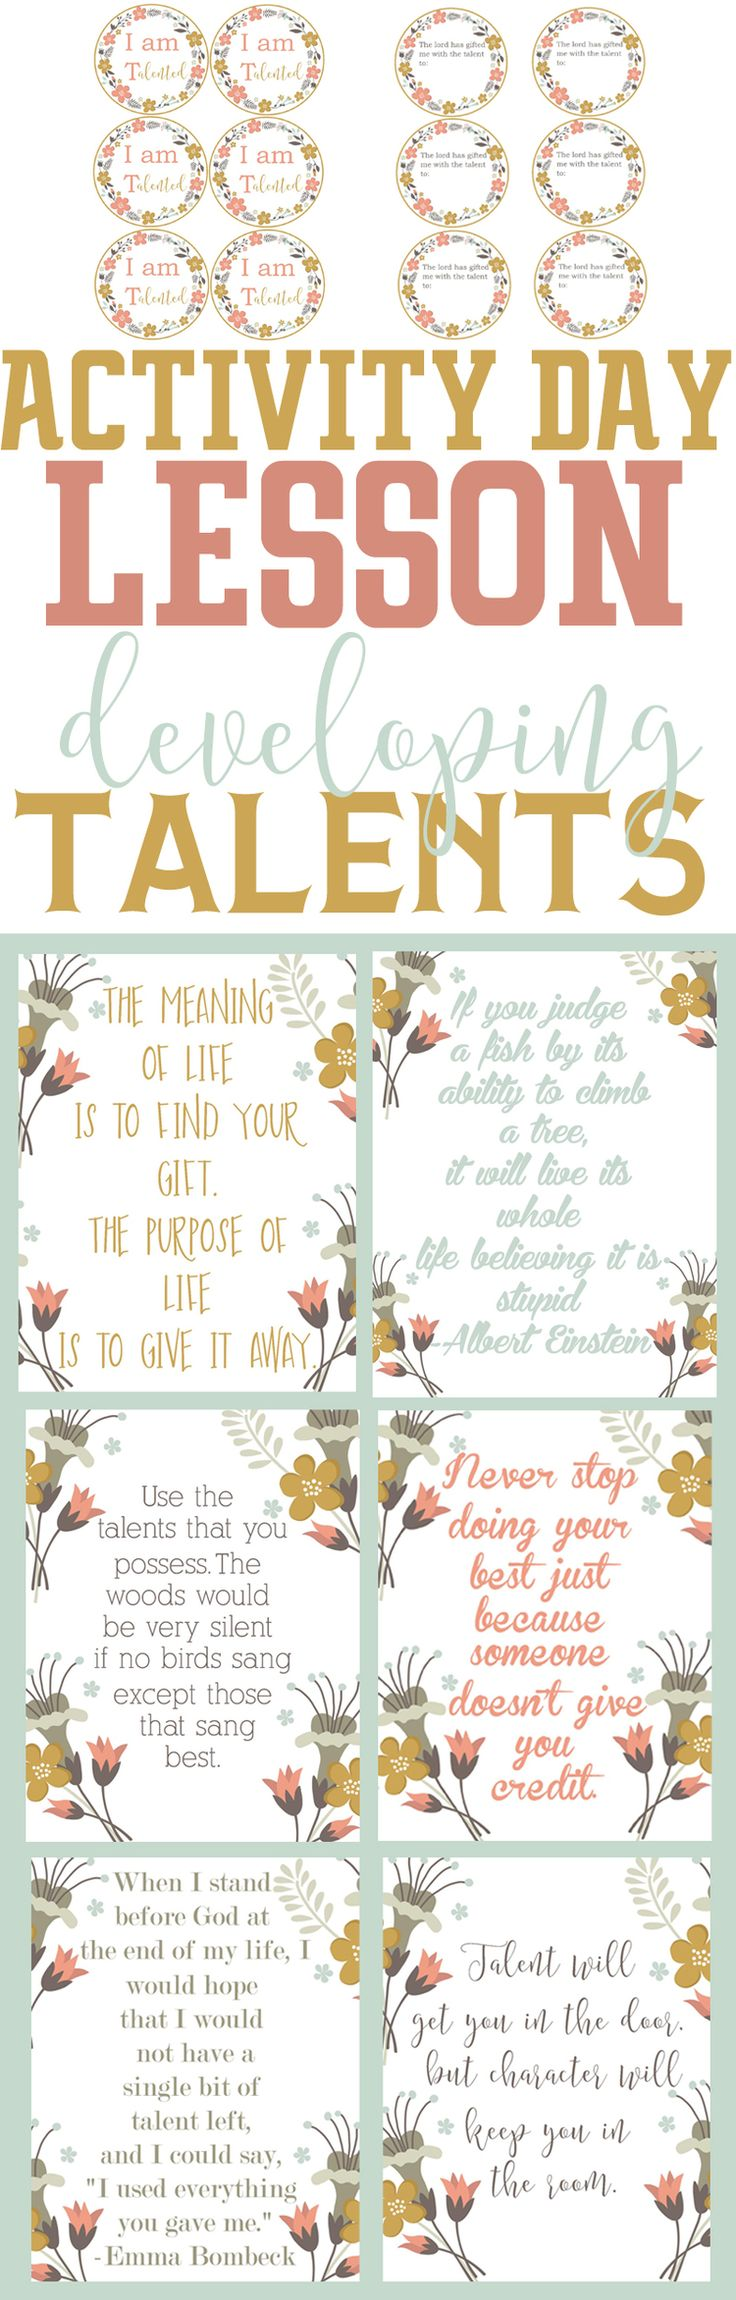 Activity Day lesson-Developing Talents and 6 printable quotes